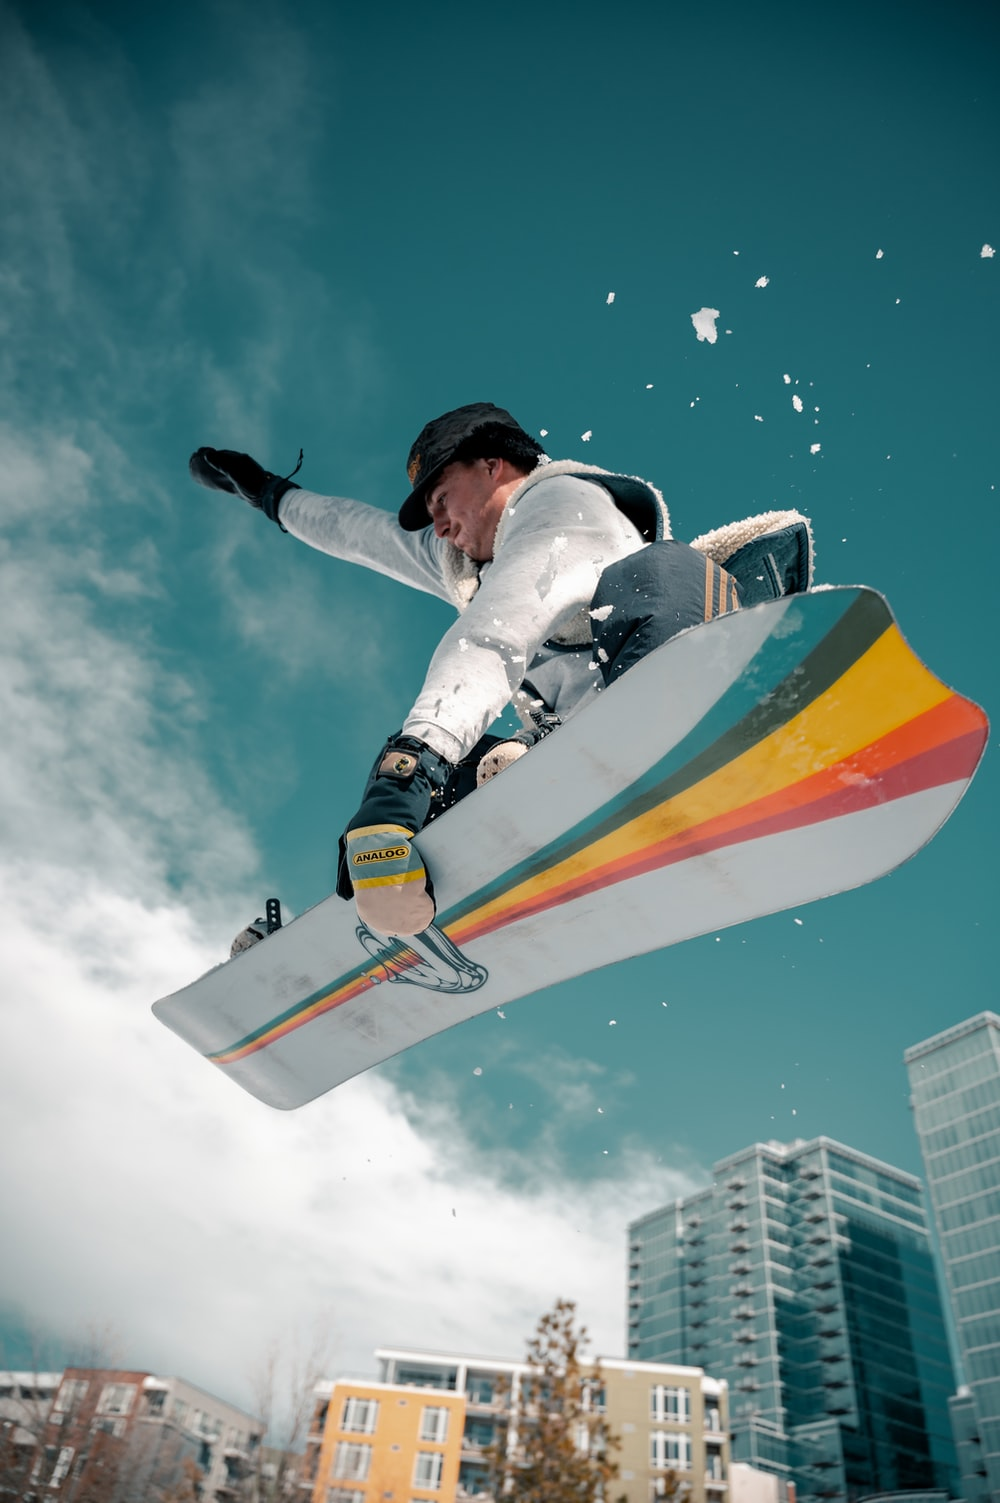 man in white and black jacket riding orange and yellow surfboard